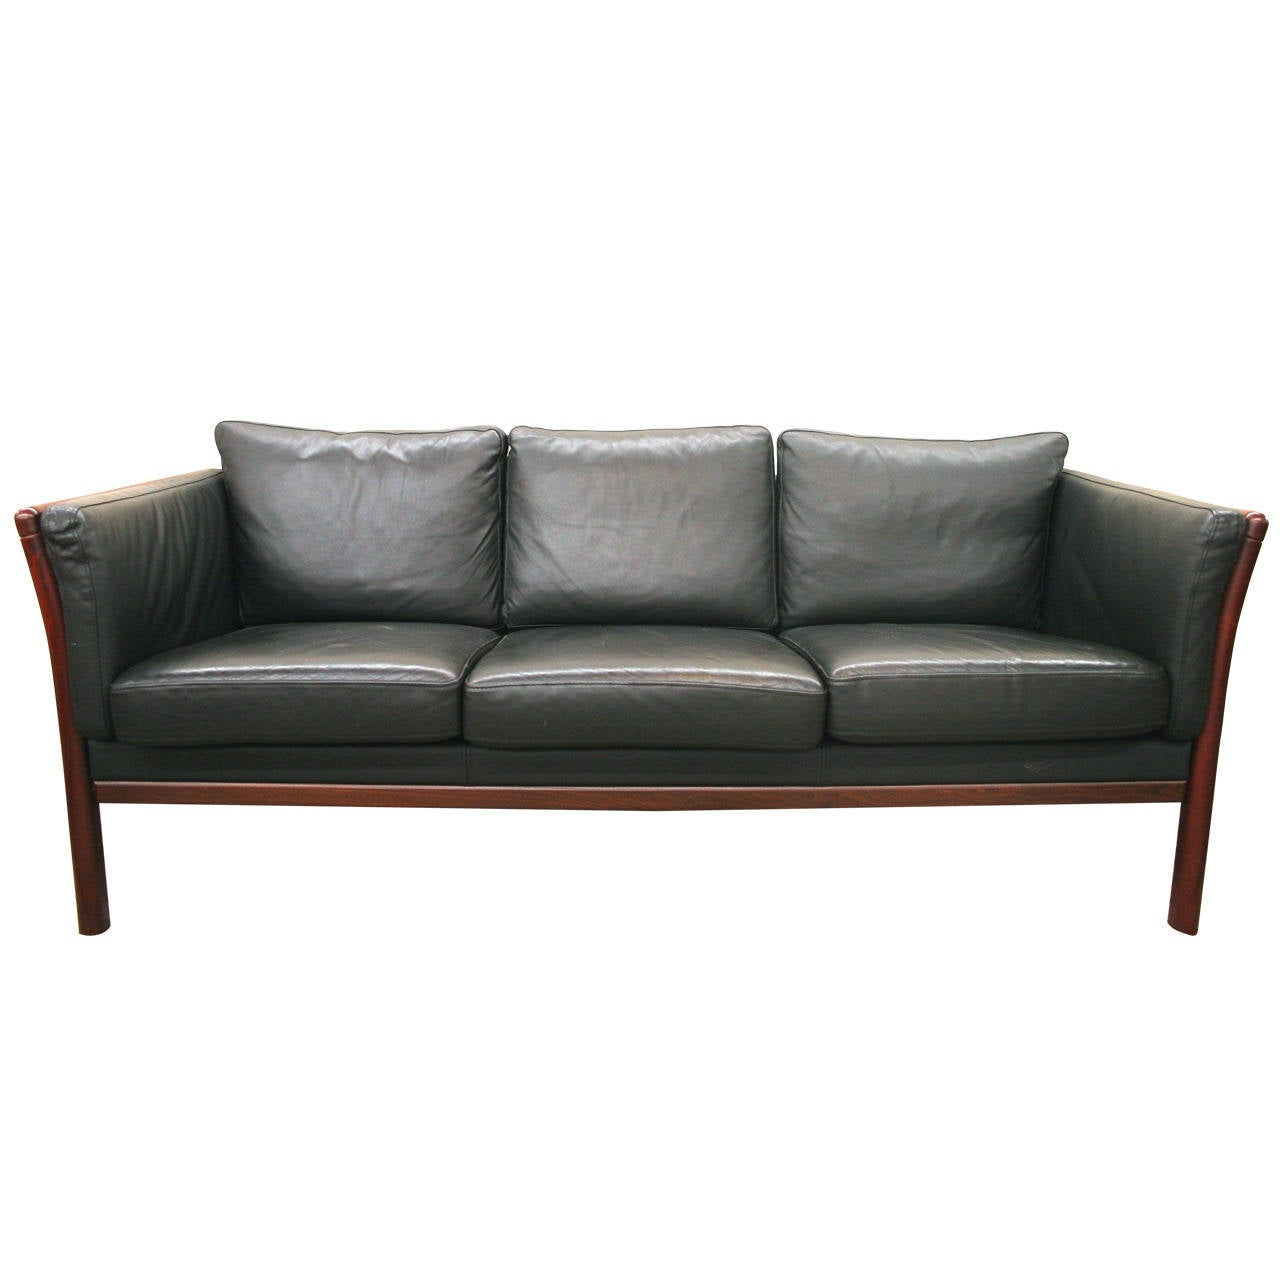 Scandinavian modern rosewood and black leather sofa at 1stdibs for Modern leather furniture